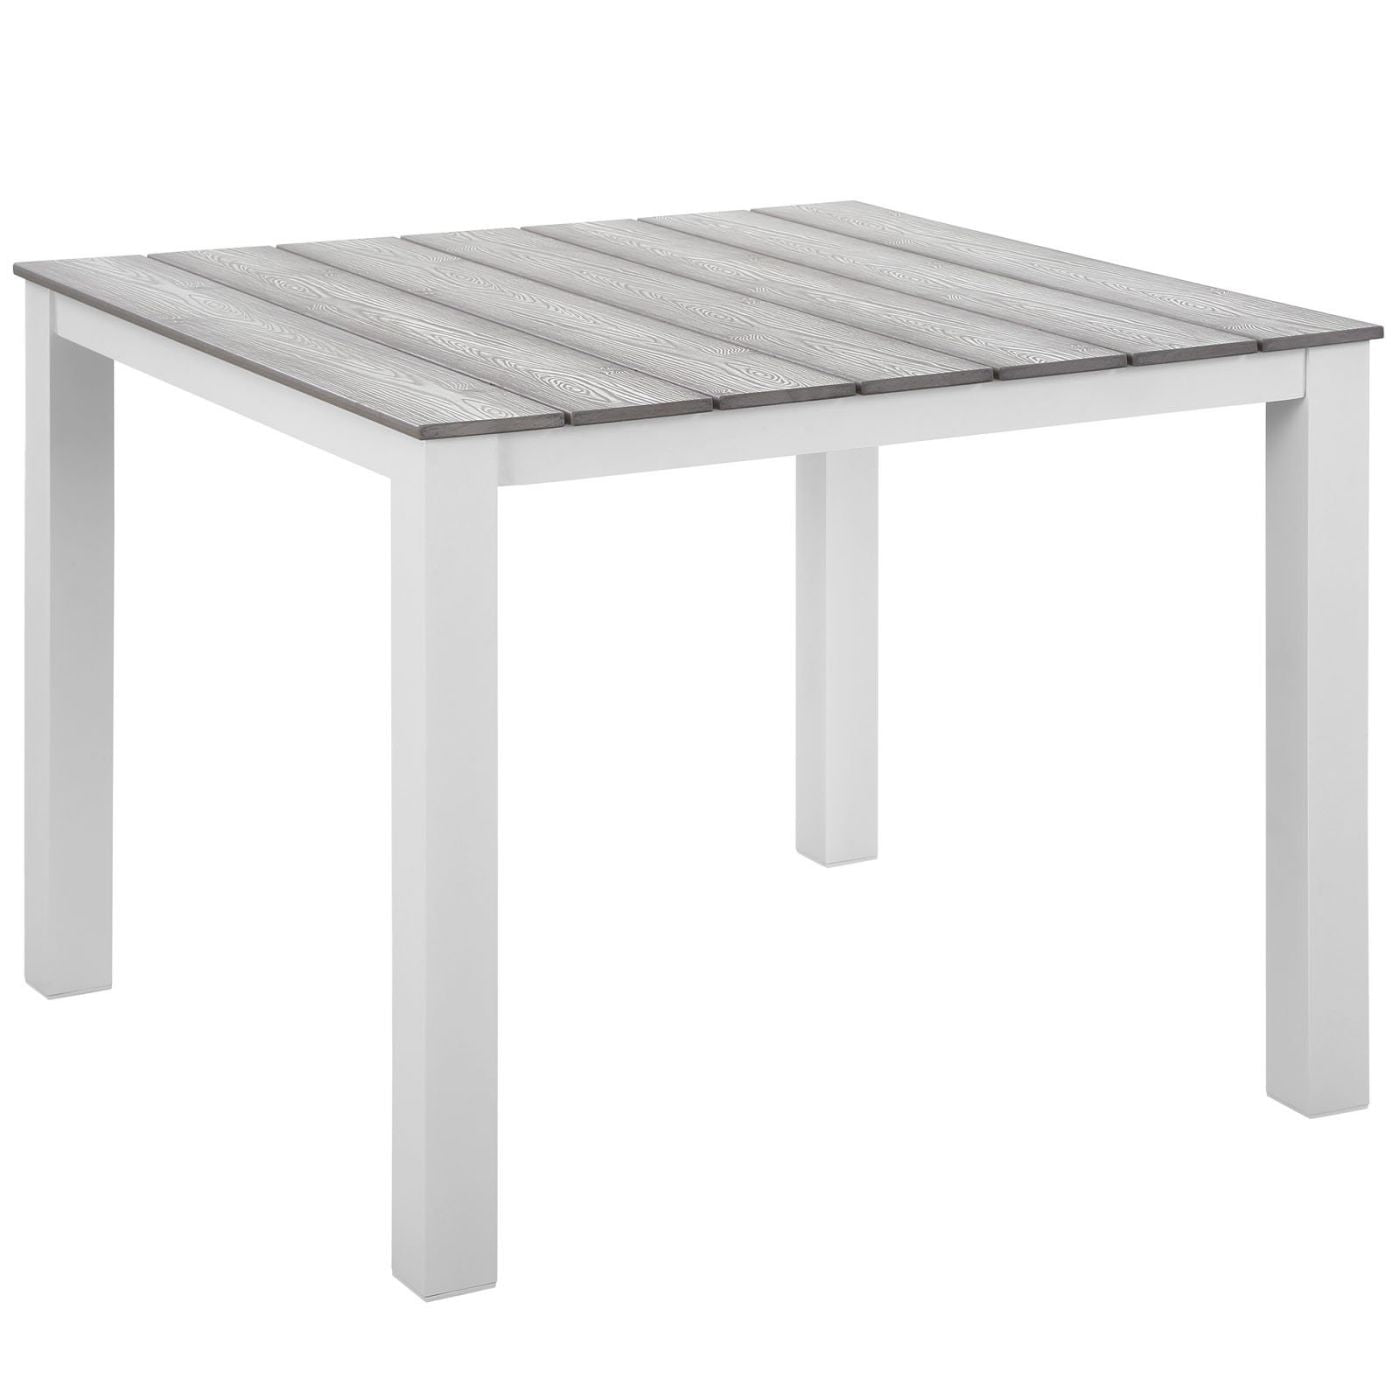 Maine 40 Modern Outdoor Patio Dining Table Solid Light Gray Wood White ... - Modway Outdoor Dining Tables On Sale. EEI-1507-WHI-LGR Maine 40